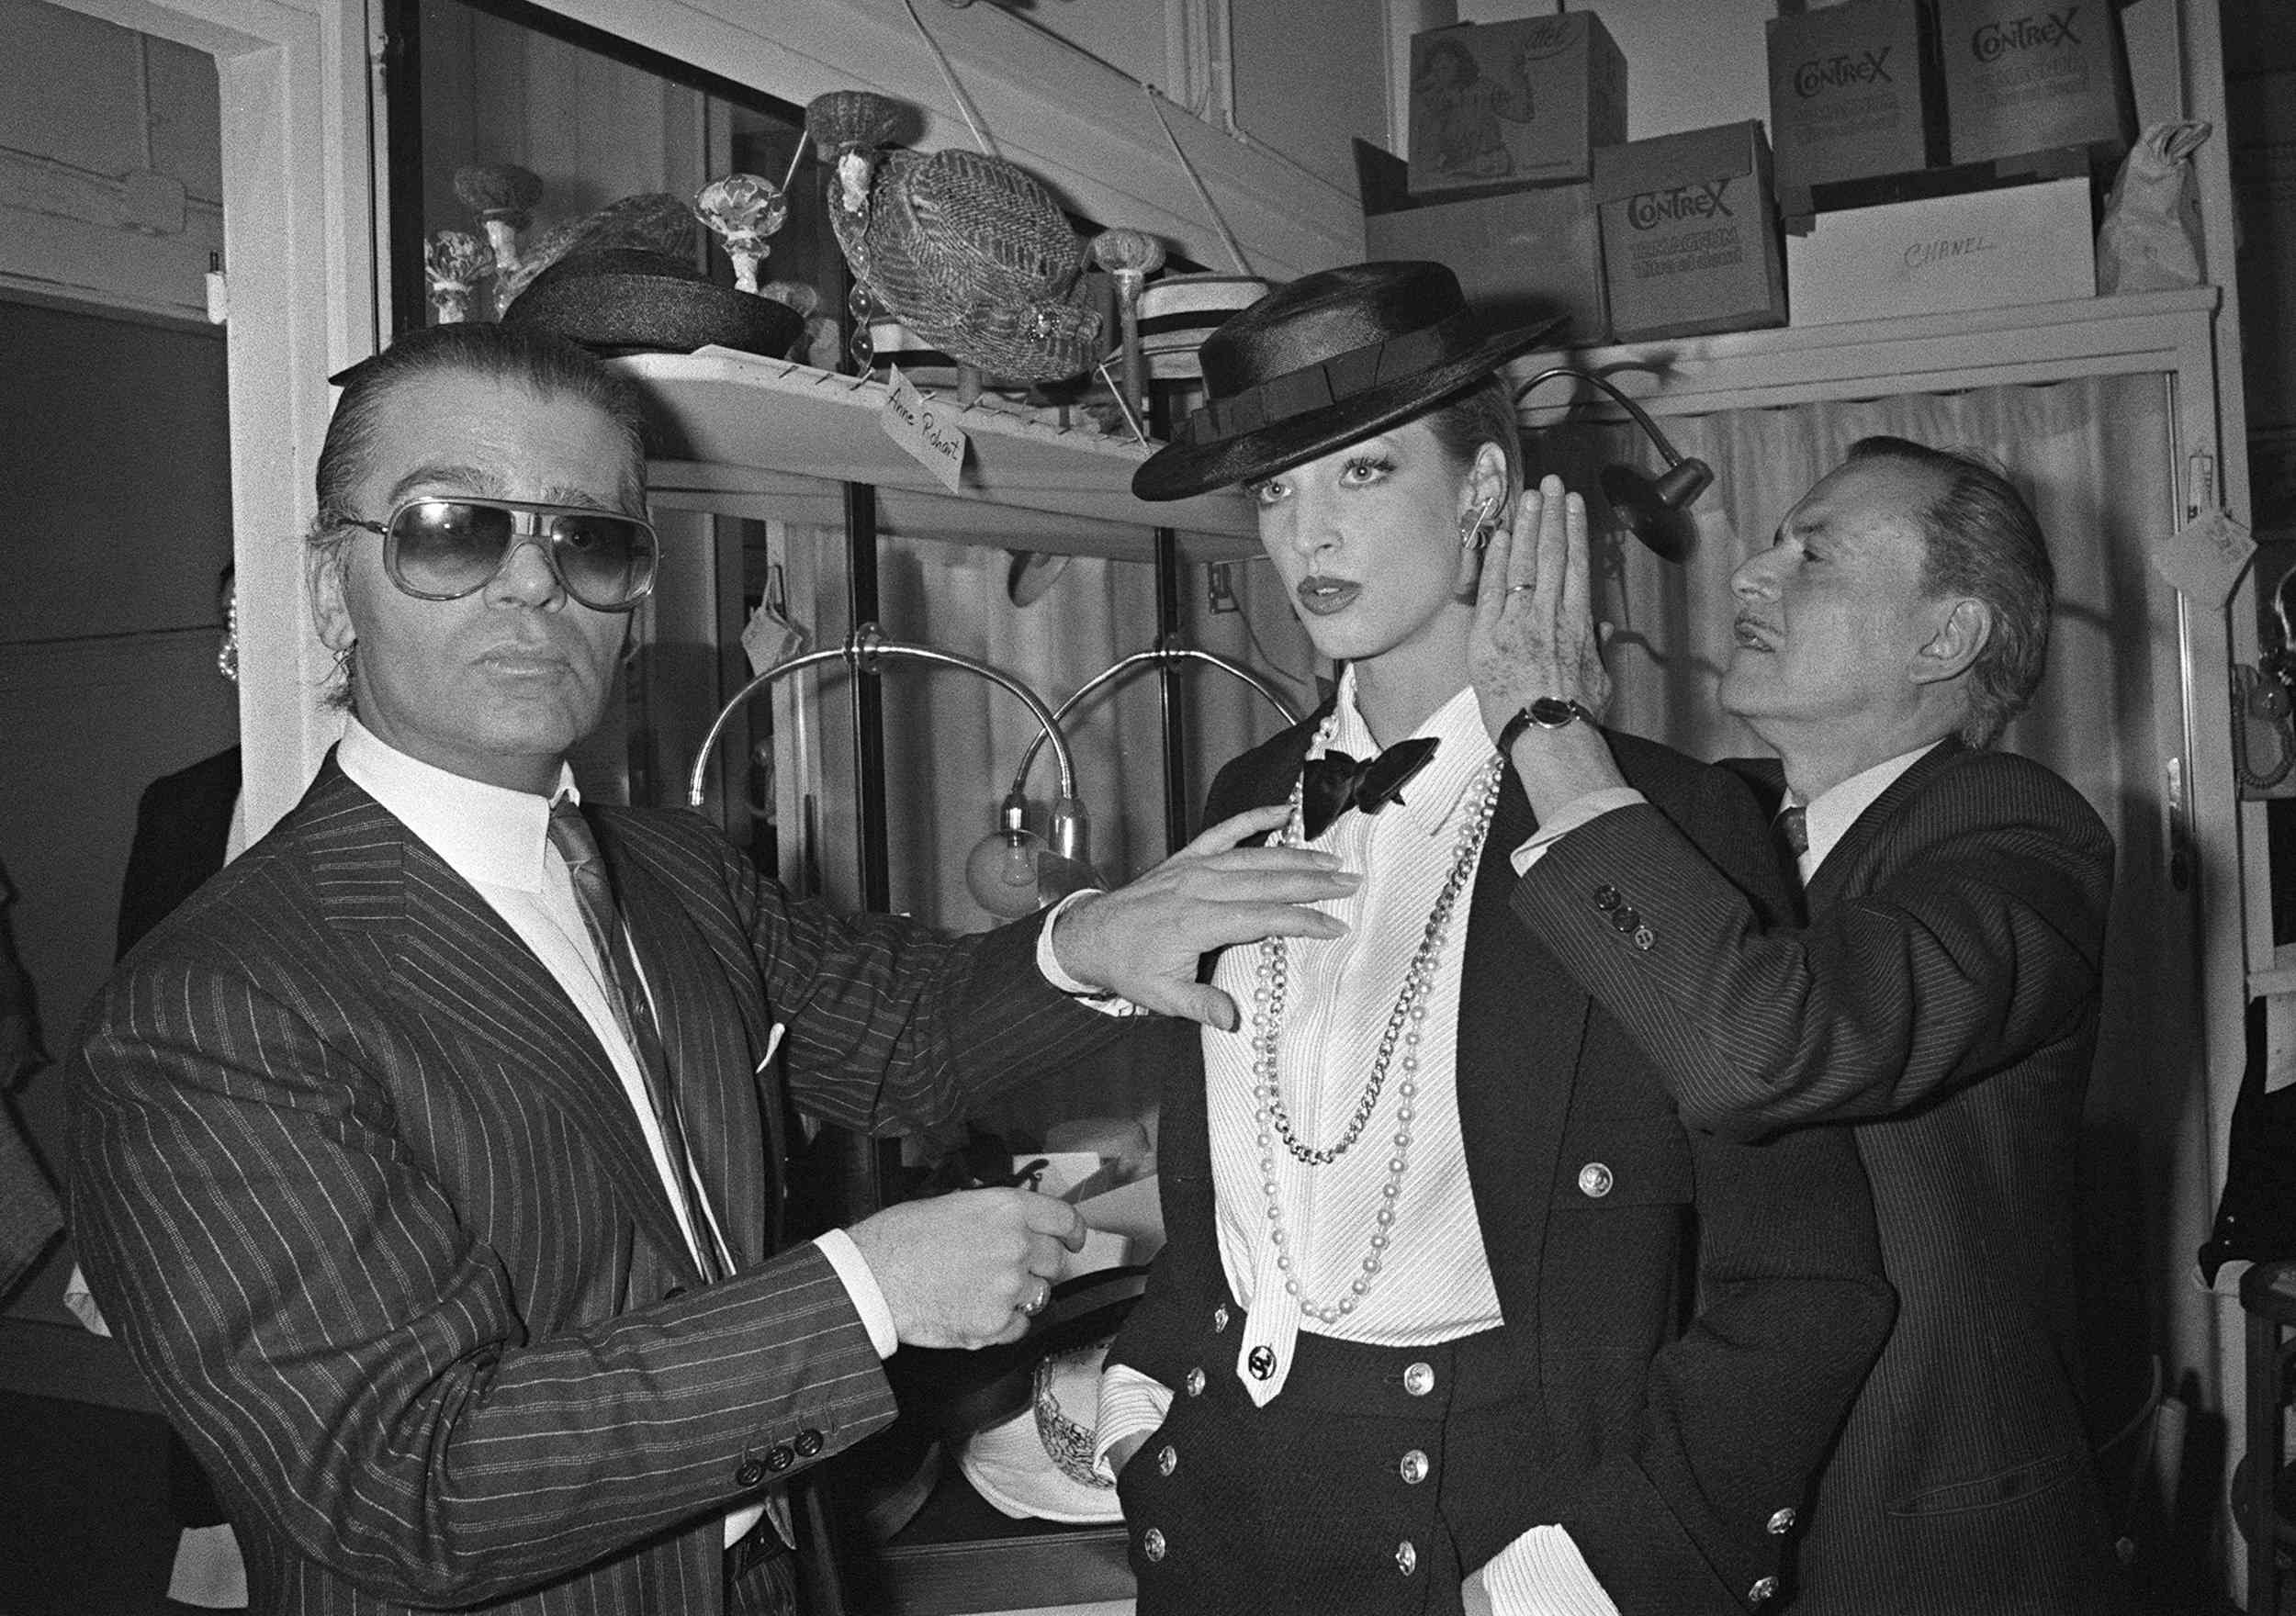 German fashion designer Karl Lagerfeld (left) and French hairdresser Alexandre de Paris (right) prepare on January 24, 1983, a model backstage ahead of the presentation of spring-summer haute couture collection for Chanel in Paris. Photo credit: Pierre Guillaud/AFP